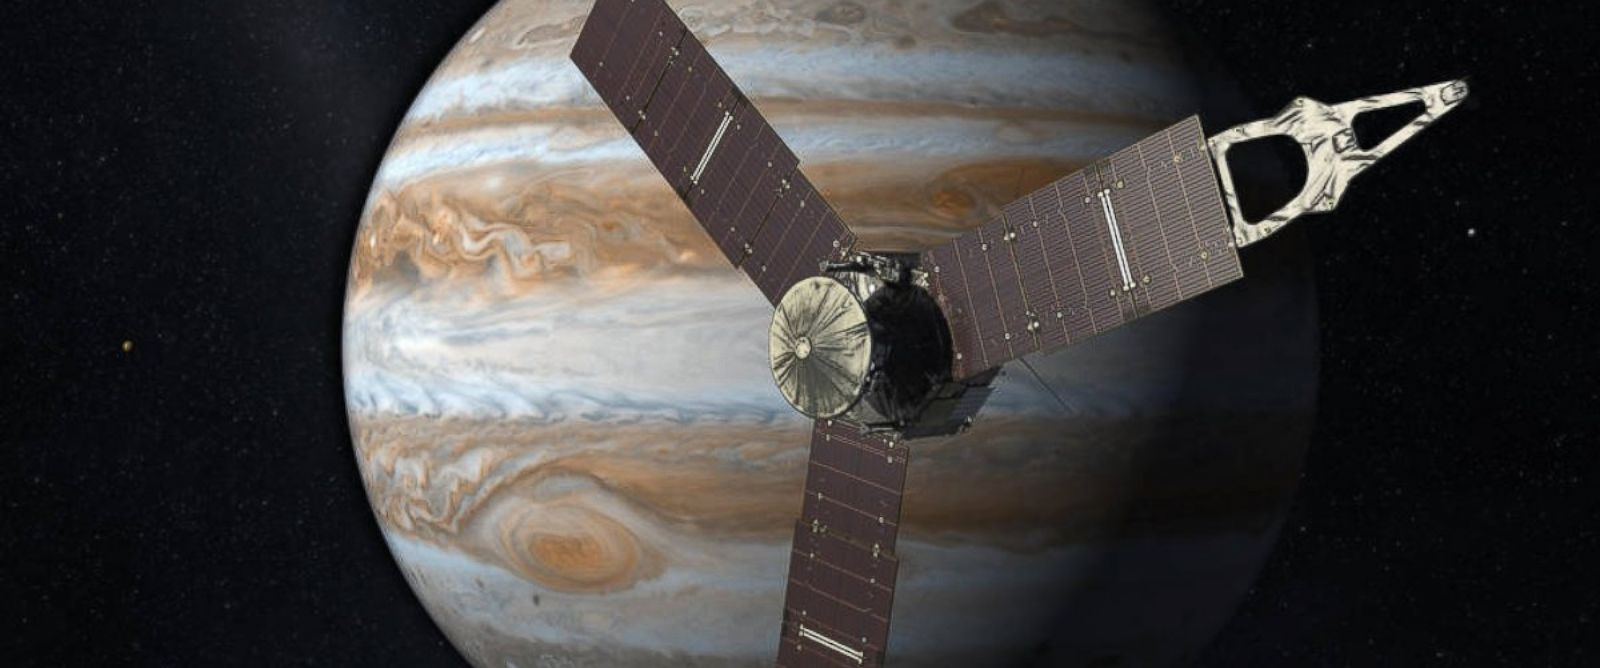 PHOTO: NASAs Juno mission to Jupiter has broken the record to become the most distant solar-powered emissary. The milestone occurred at 2 p.m. EST on Jan. 13, 2016 when Juno was about 493 million miles from the sun.